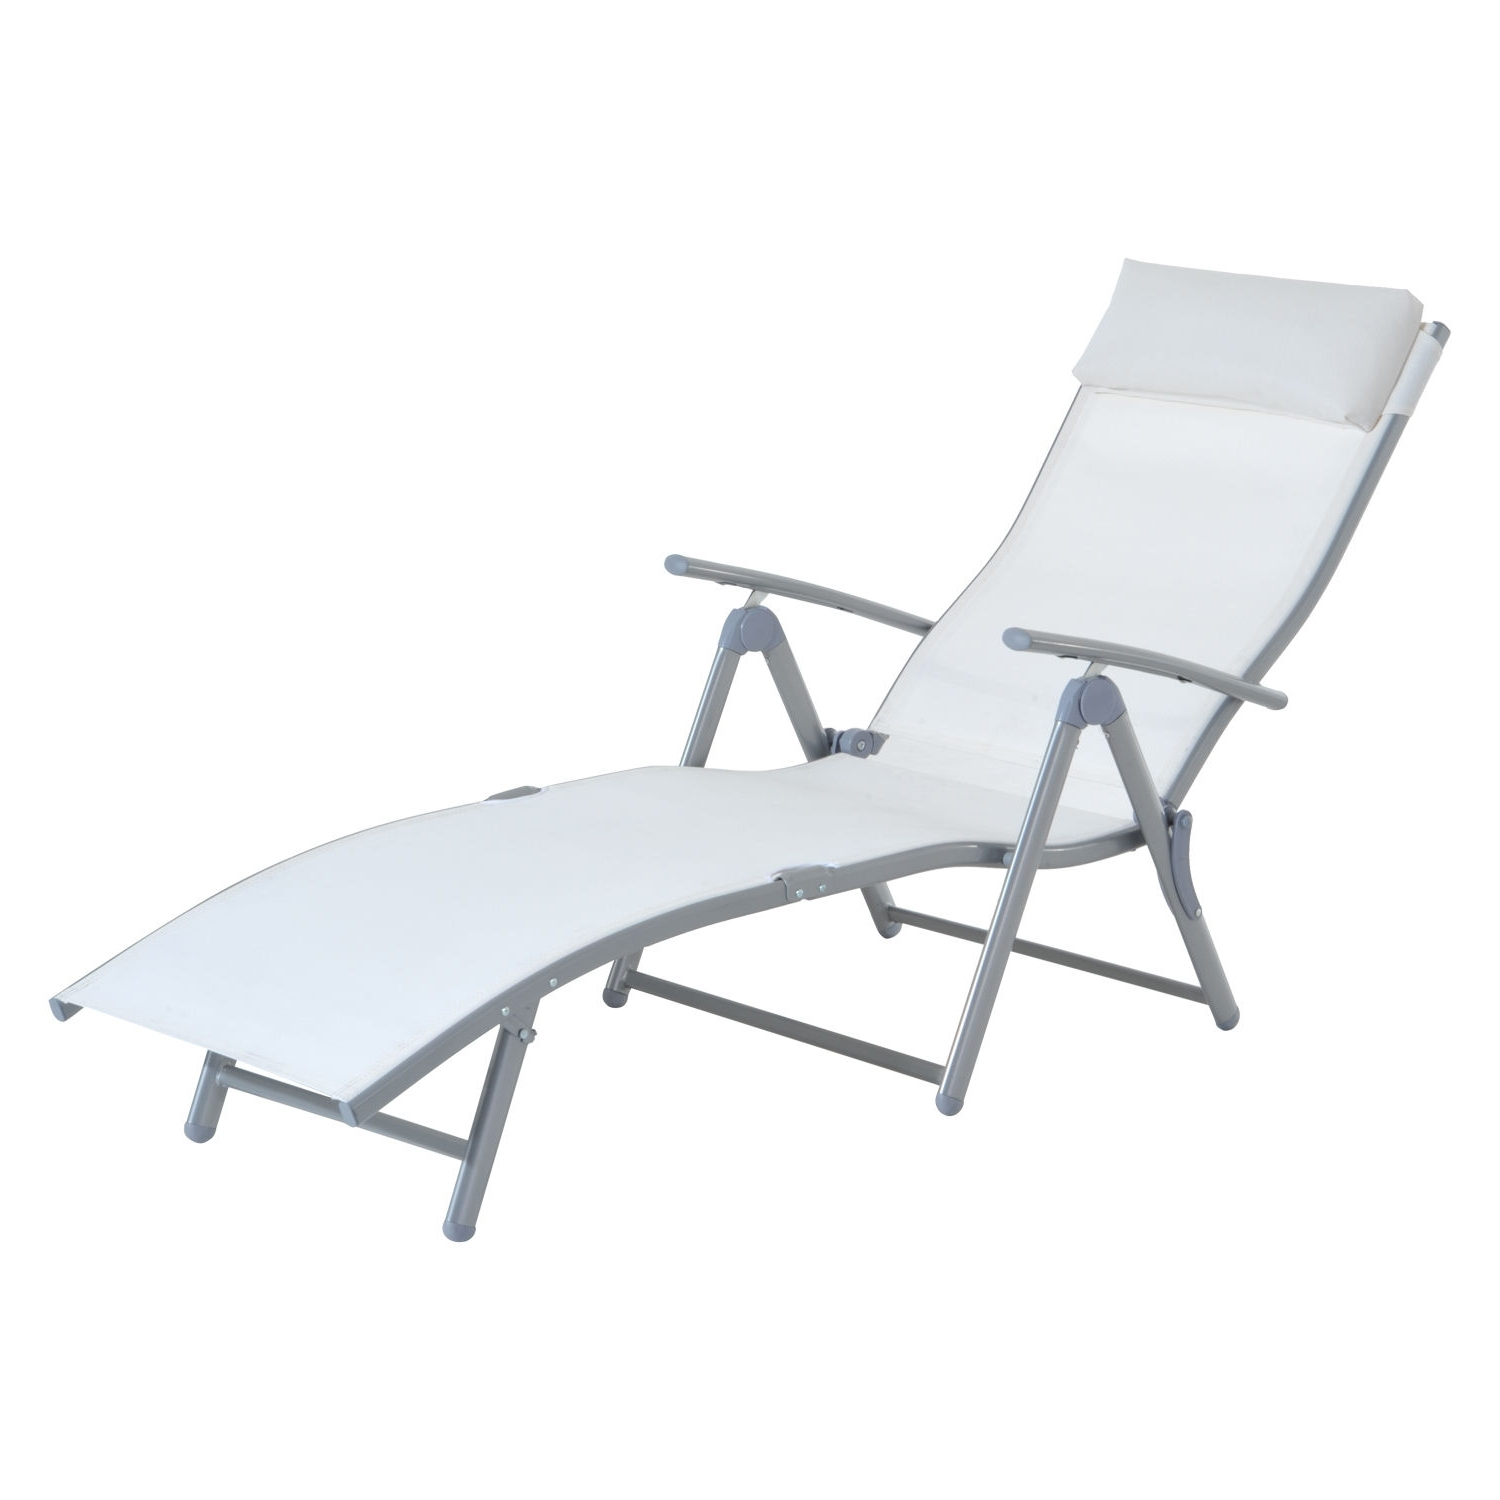 Outdoor : Lowes Chaise Lounge Indoor Outdoor Chaise Lounge Chairs Pertaining To Fashionable Vinyl Outdoor Chaise Lounge Chairs (View 7 of 15)